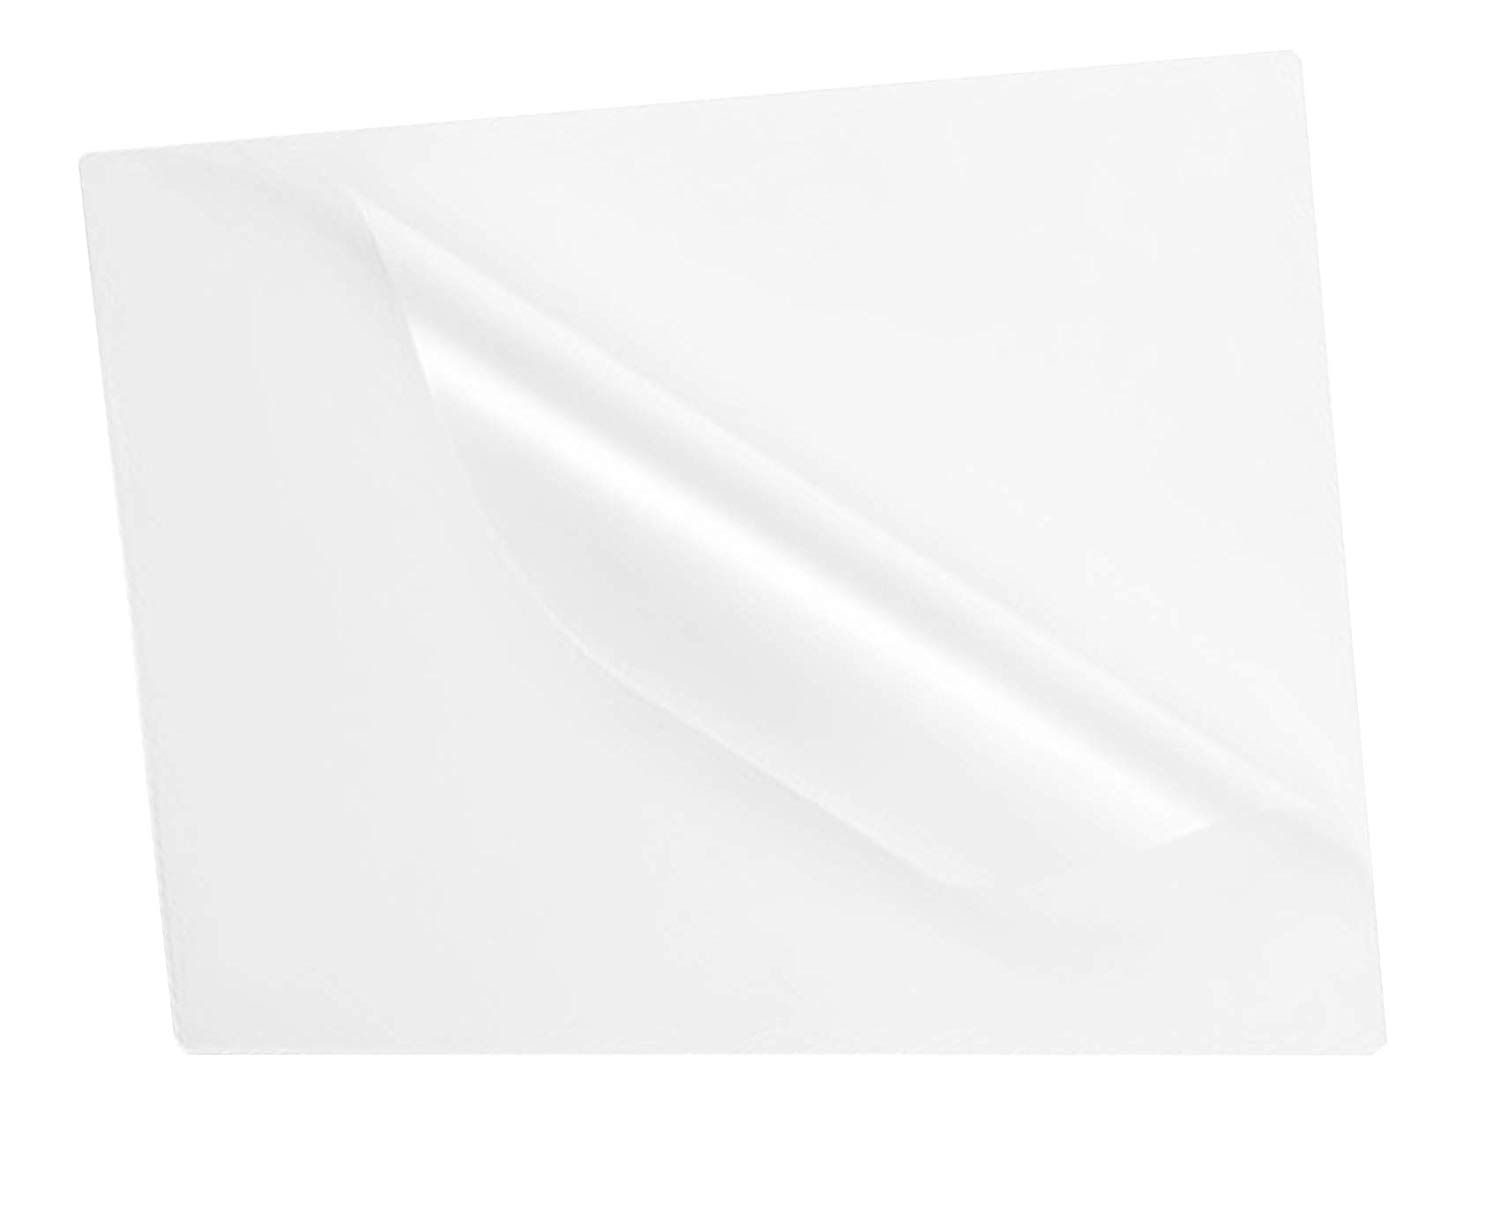 Qty 500 7 Mil Military Card Laminating Pouches 2 5 8 X 3 7 8 Hot Laminator Sleeves To View Further For This Item Visit The I Military Cards Laminator Pouch